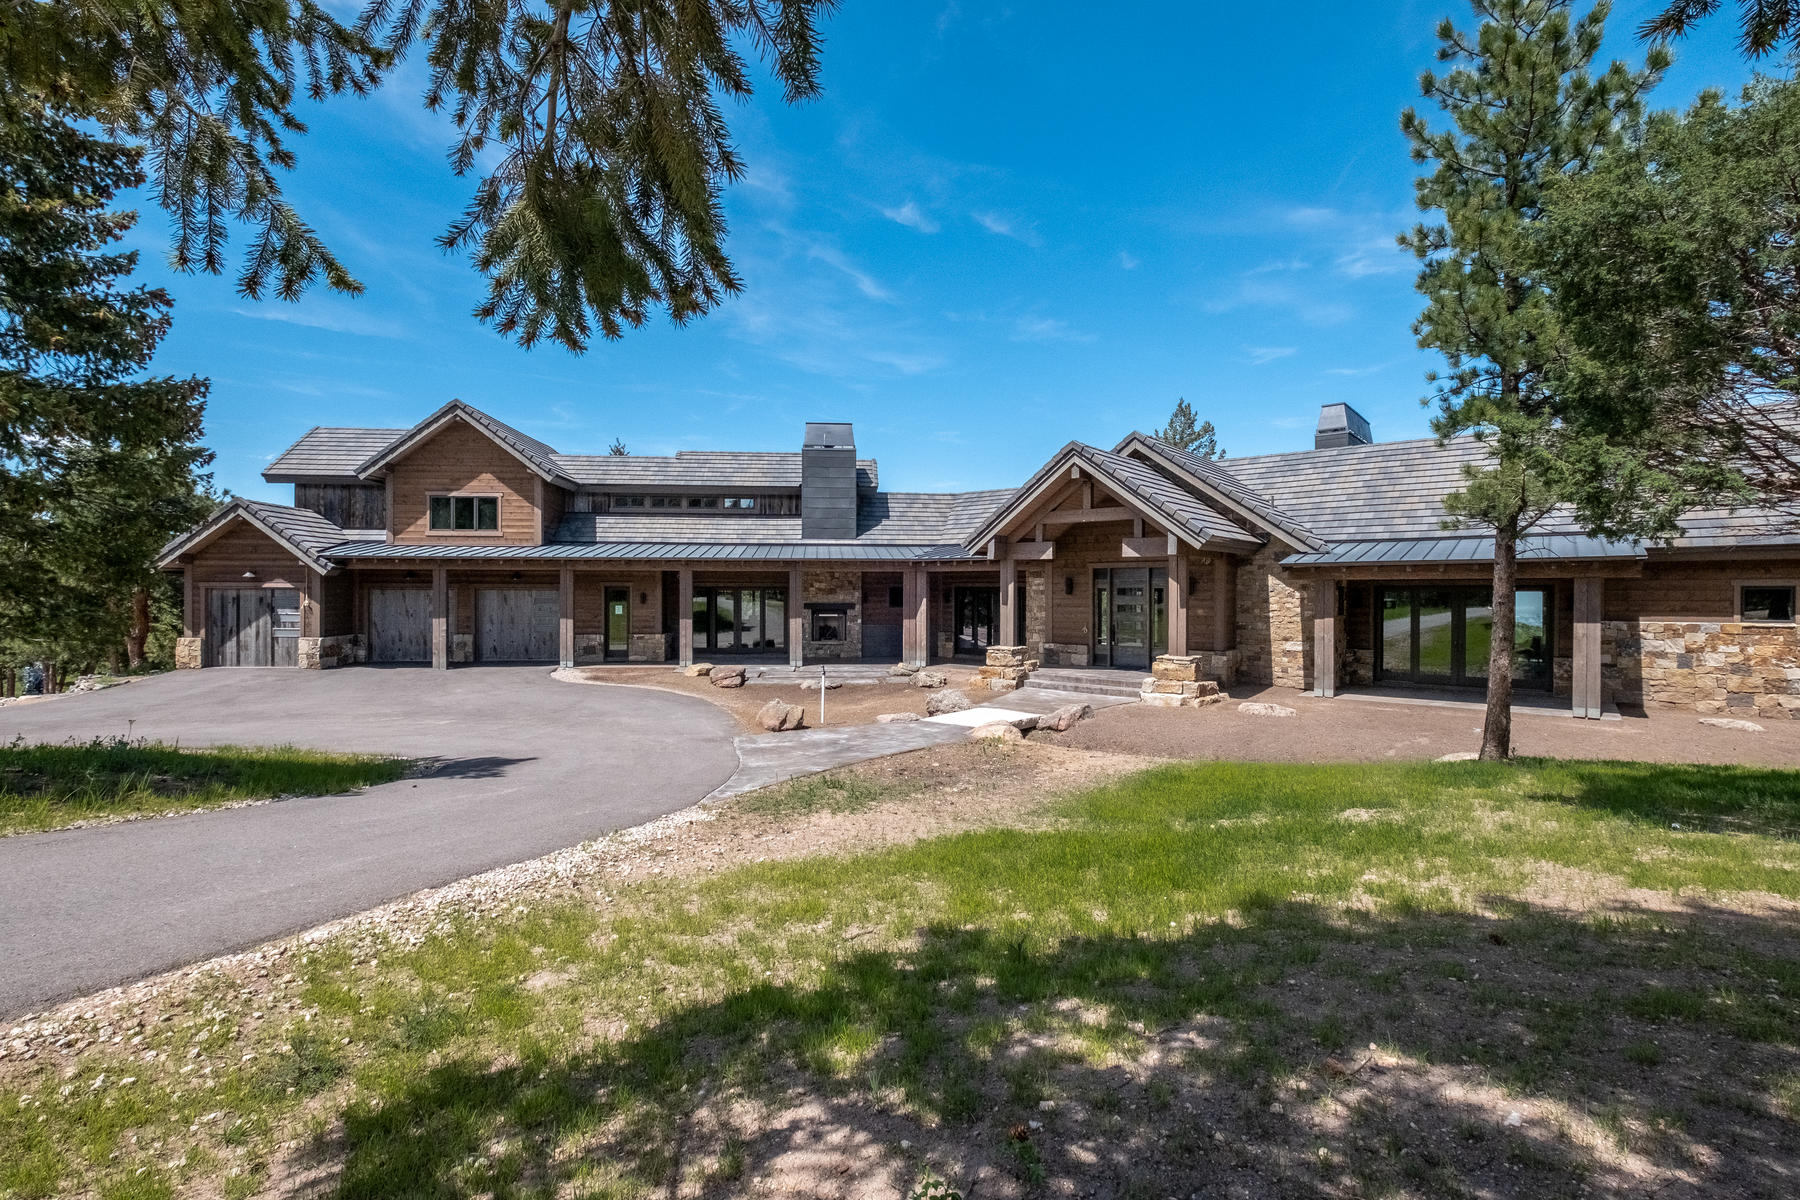 Single Family Homes for Sale at Architecturally appealing, cutting edge new construction 6135 Northway Drive, Morrison, Colorado 80465 United States